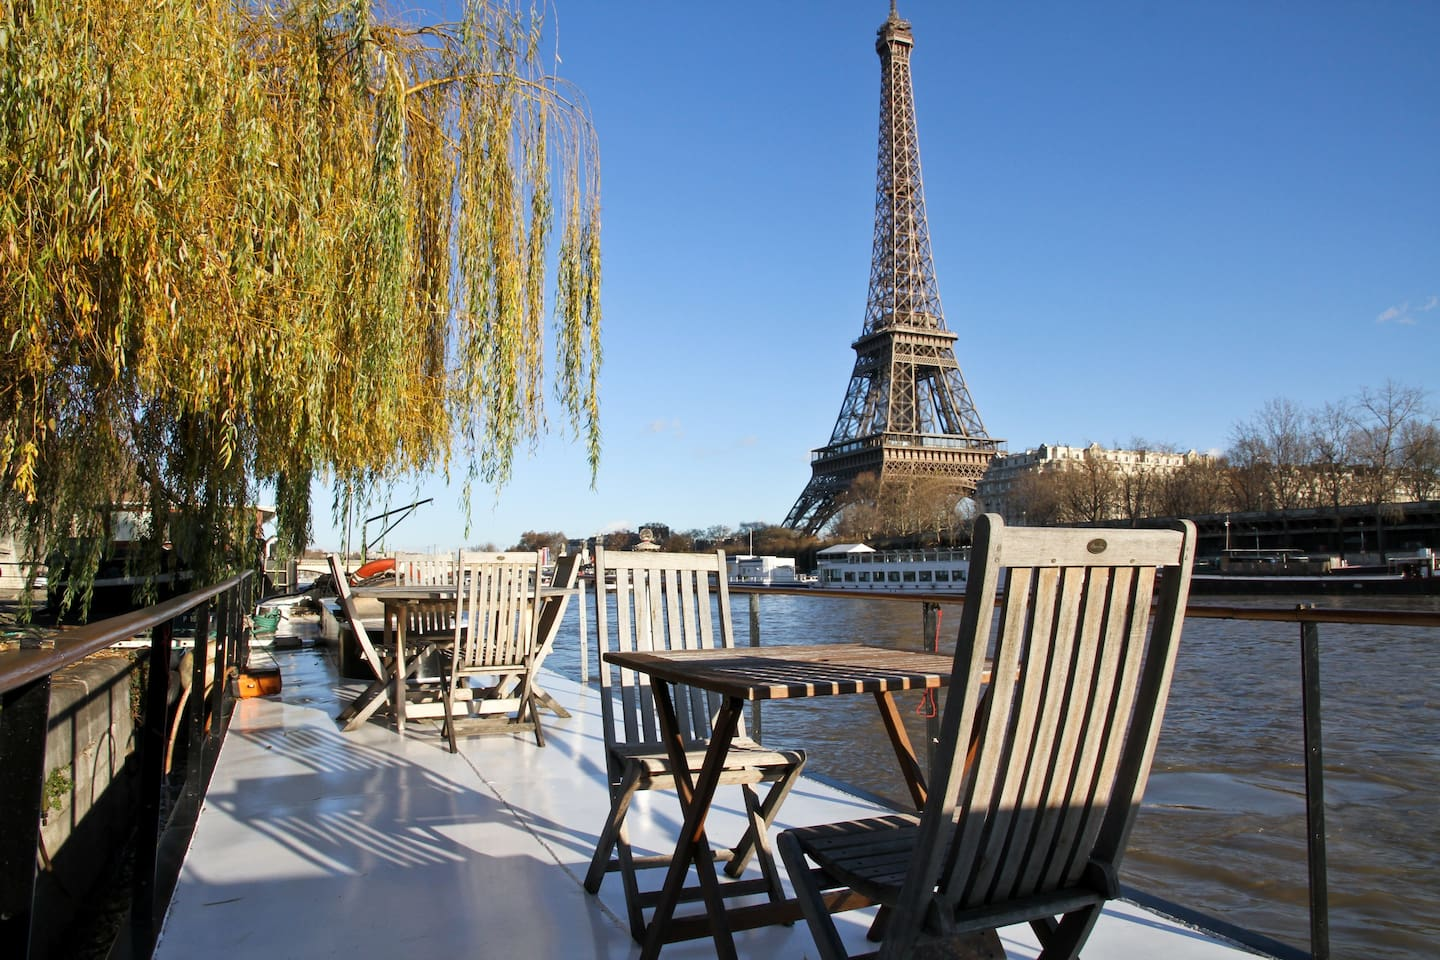 Airbnb Peniche Paris Location Paris Airbnb Location Charmante Péniche Face à La Tour Eiffel